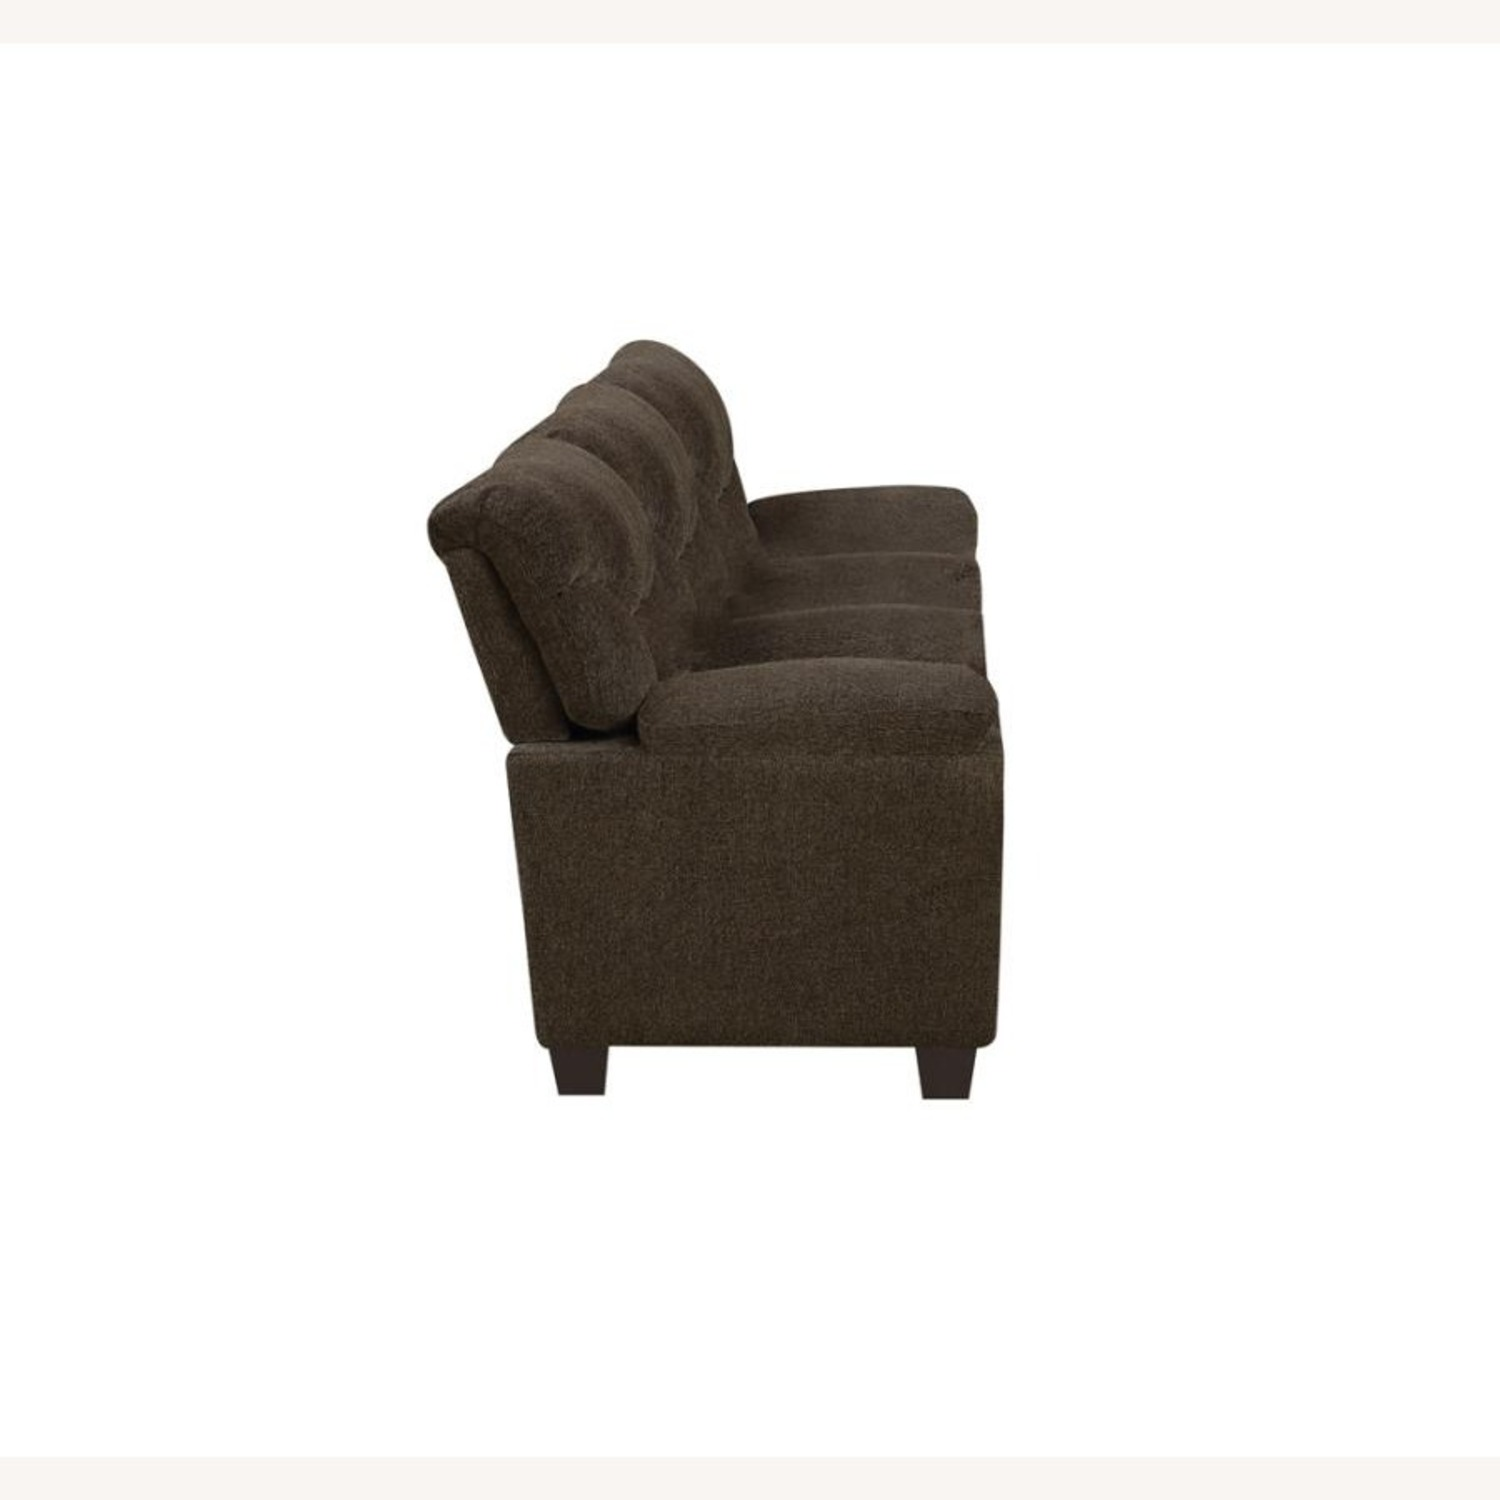 Sofa In Brown Chenille Upholstery Finish - image-2